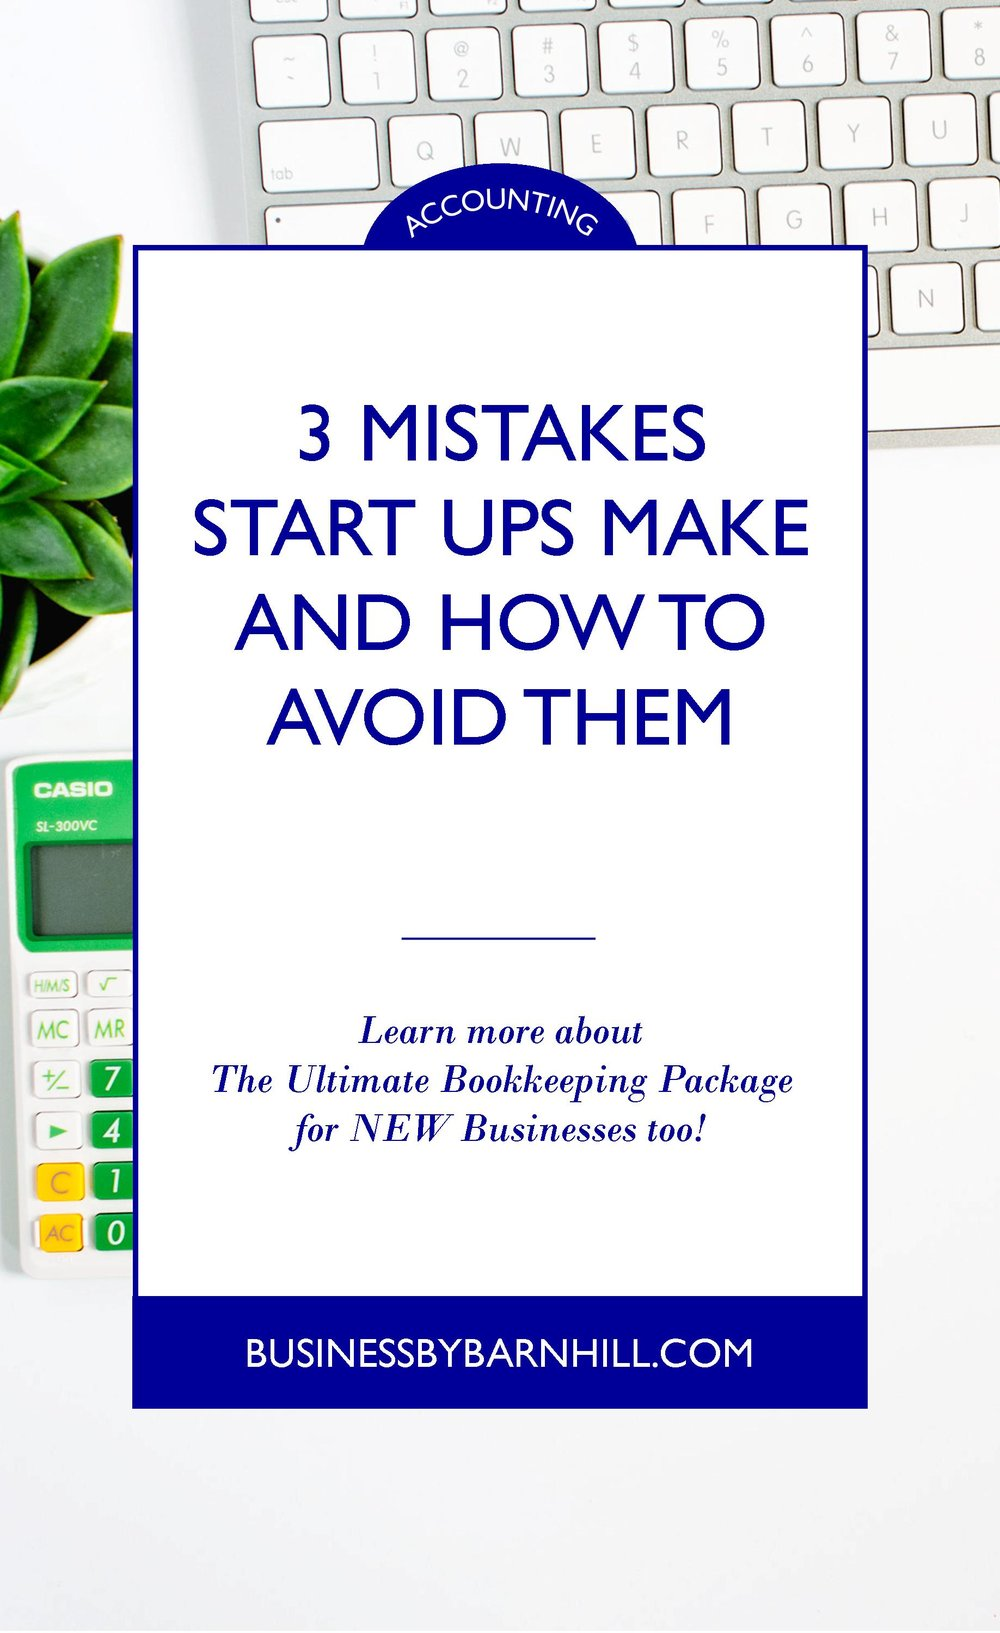 business by barnhill pinterest three mistakes start up make and how to avoid them 2.jpg